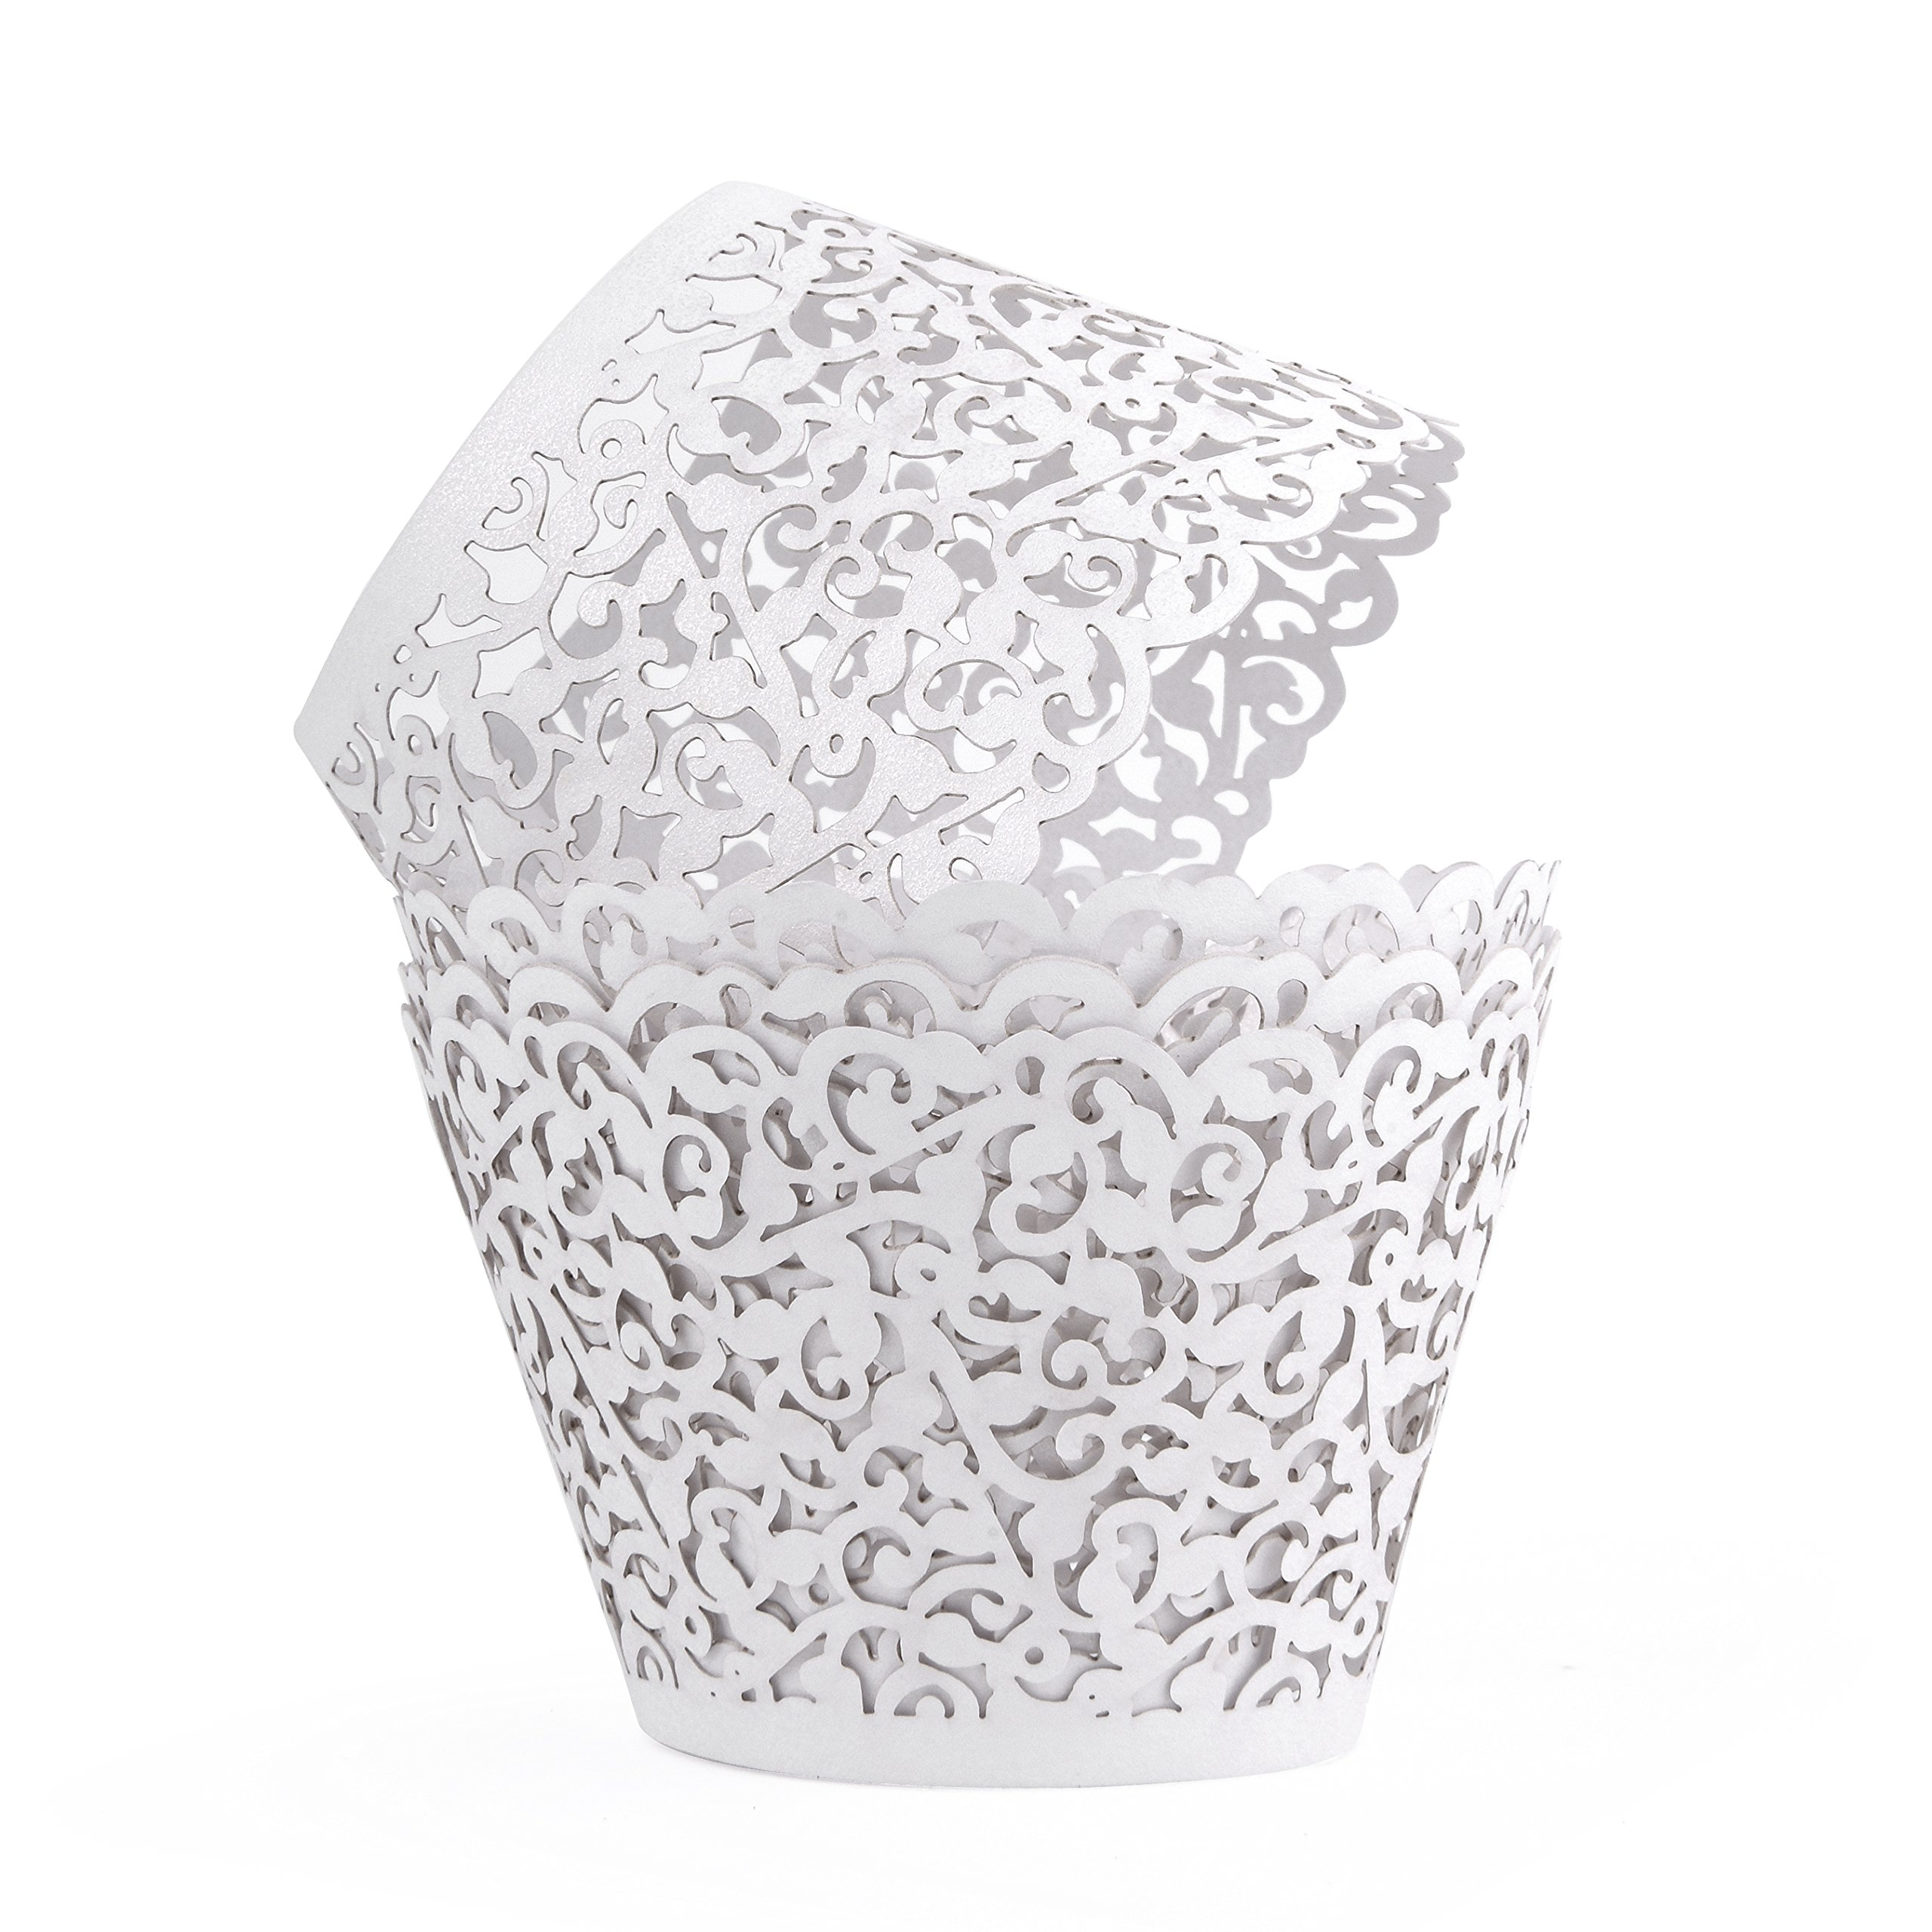 100 Pack - Cupcake Wrappers White Shimmering Decorative Vine Lace Liner Wrapper - Versatile Design makes it perfect for Weddings Birthdays Tea Parties and any Special Event